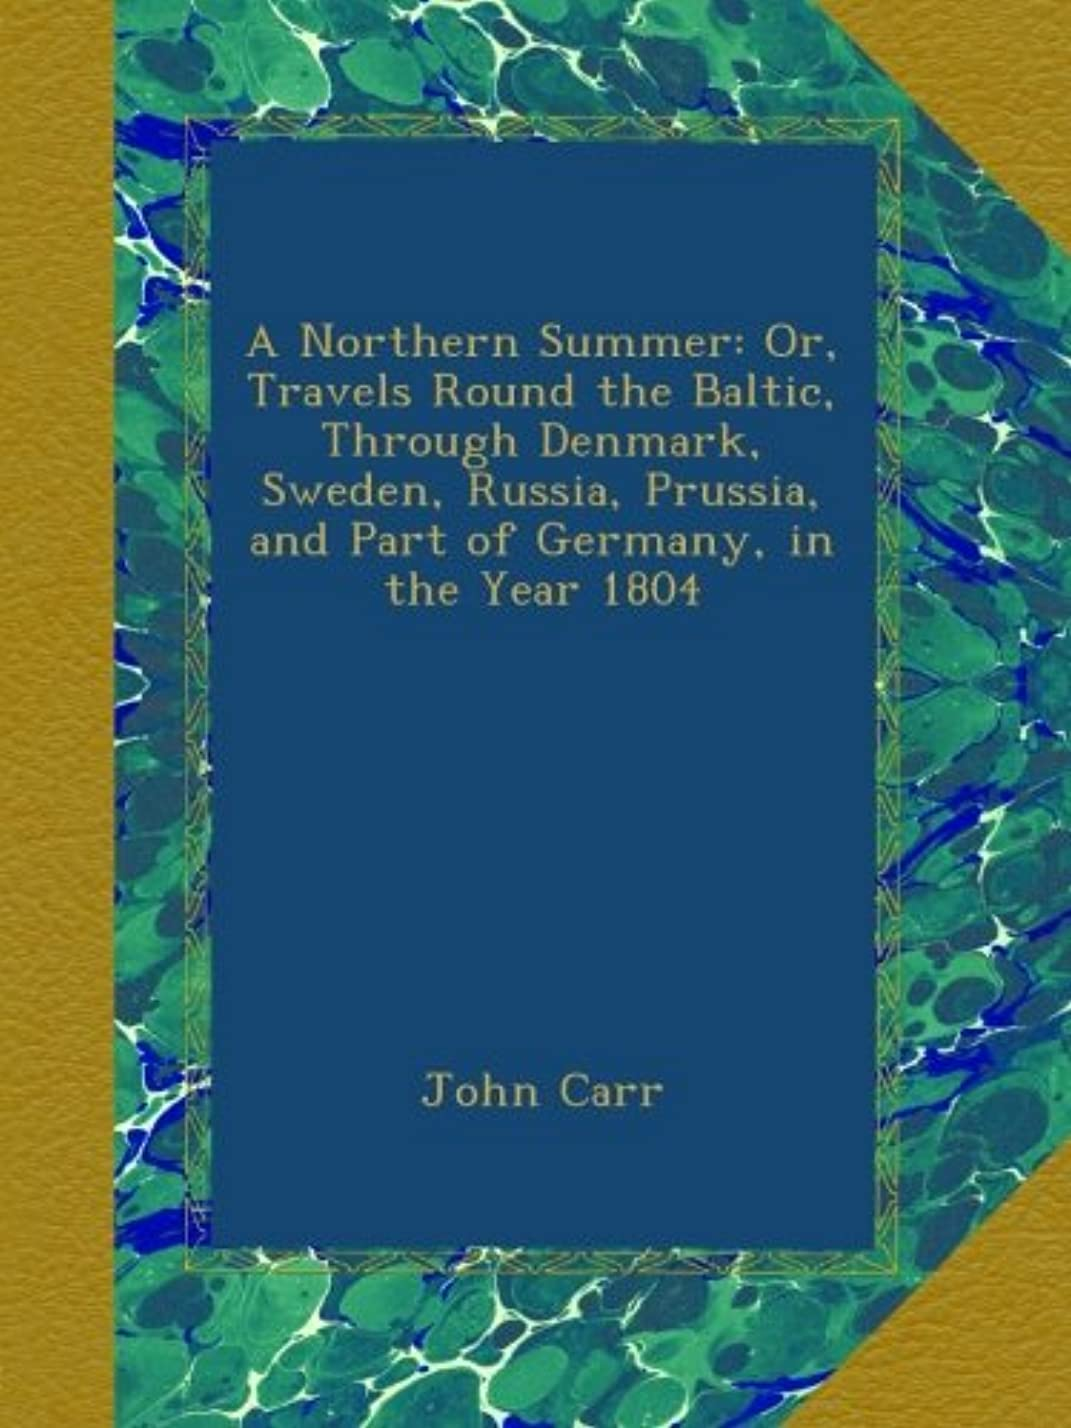 ところでワームモジュールA Northern Summer: Or, Travels Round the Baltic, Through Denmark, Sweden, Russia, Prussia, and Part of Germany, in the Year 1804